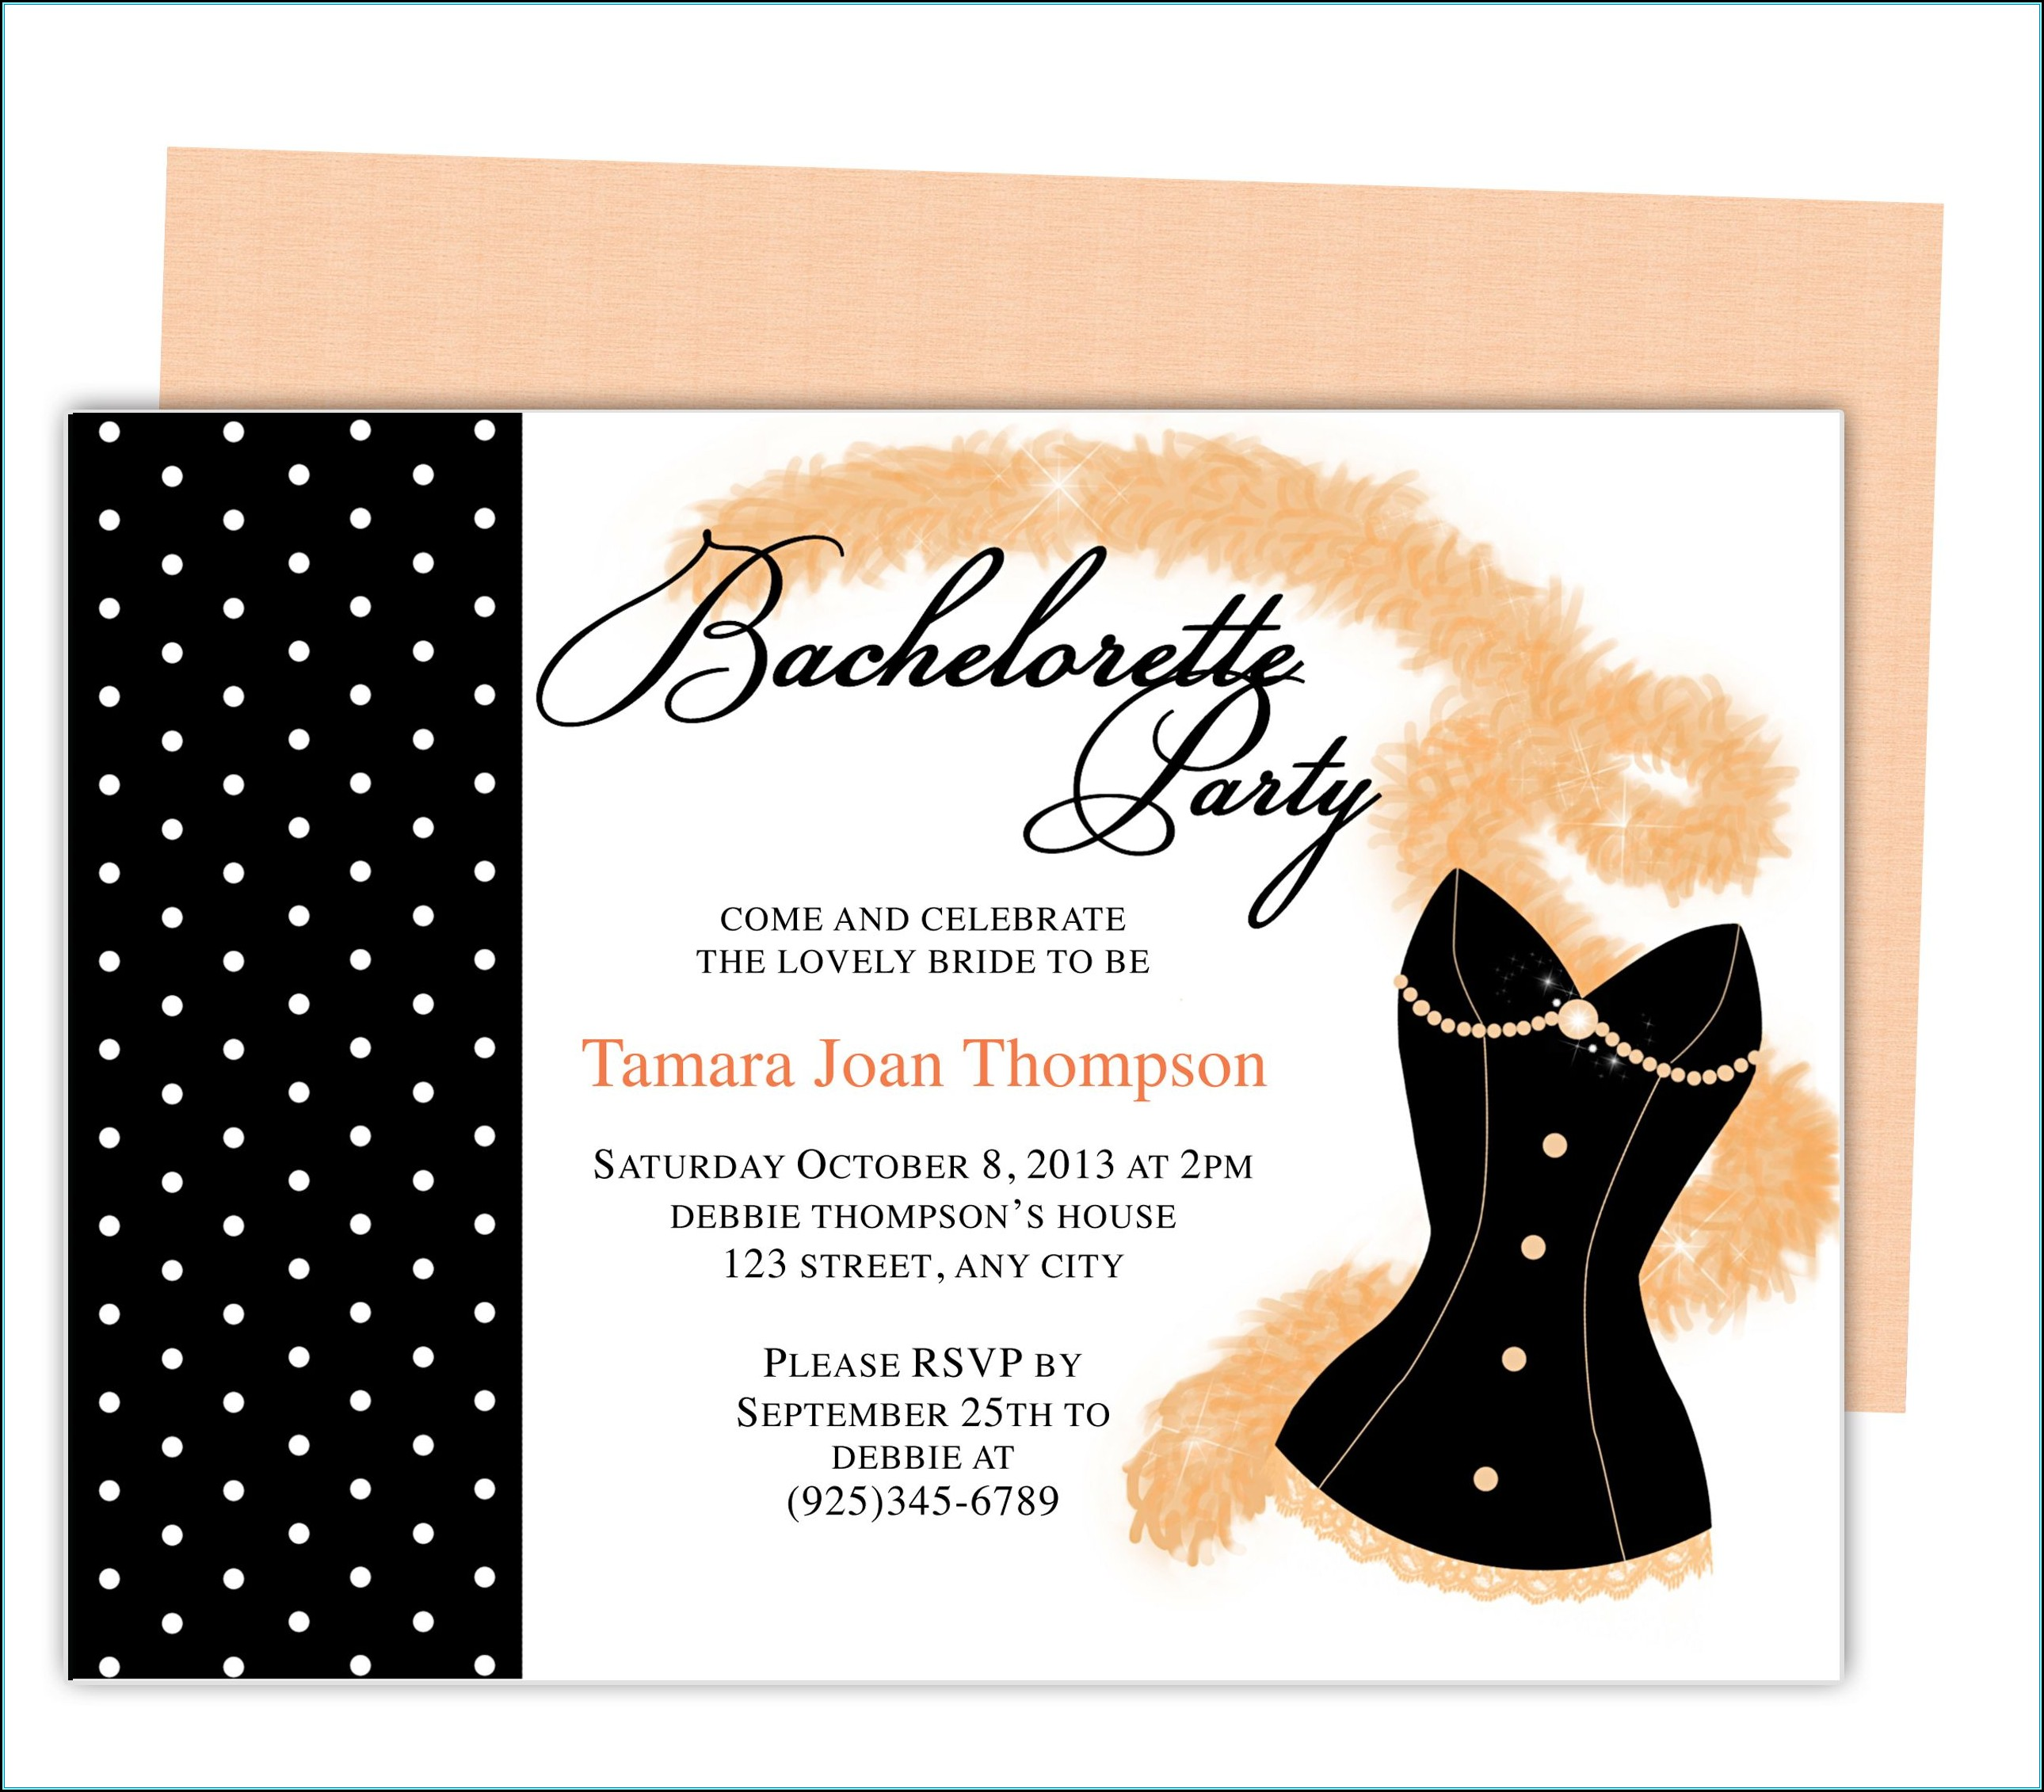 Printable Bachelorette Party Invitations Templates